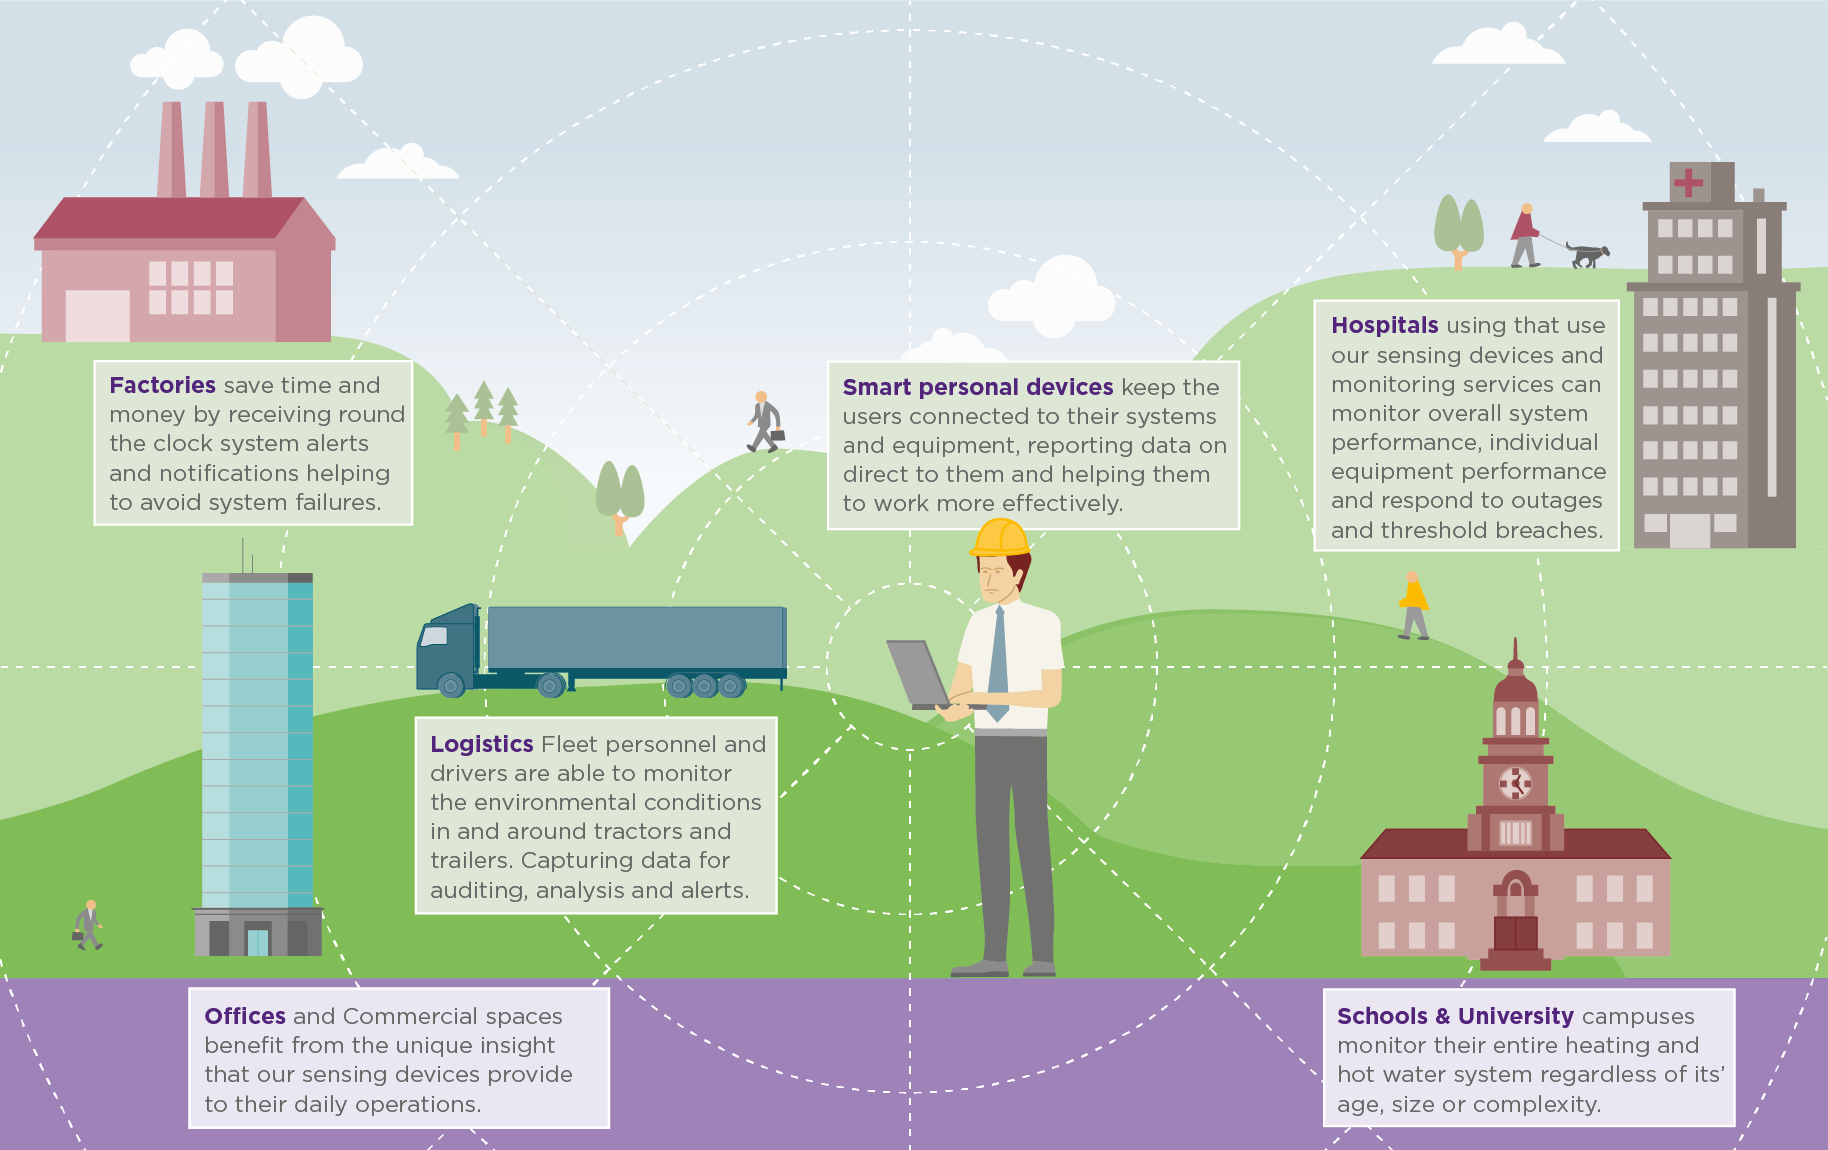 Illustrates Industrial Internet of Things (IIOT) use cases